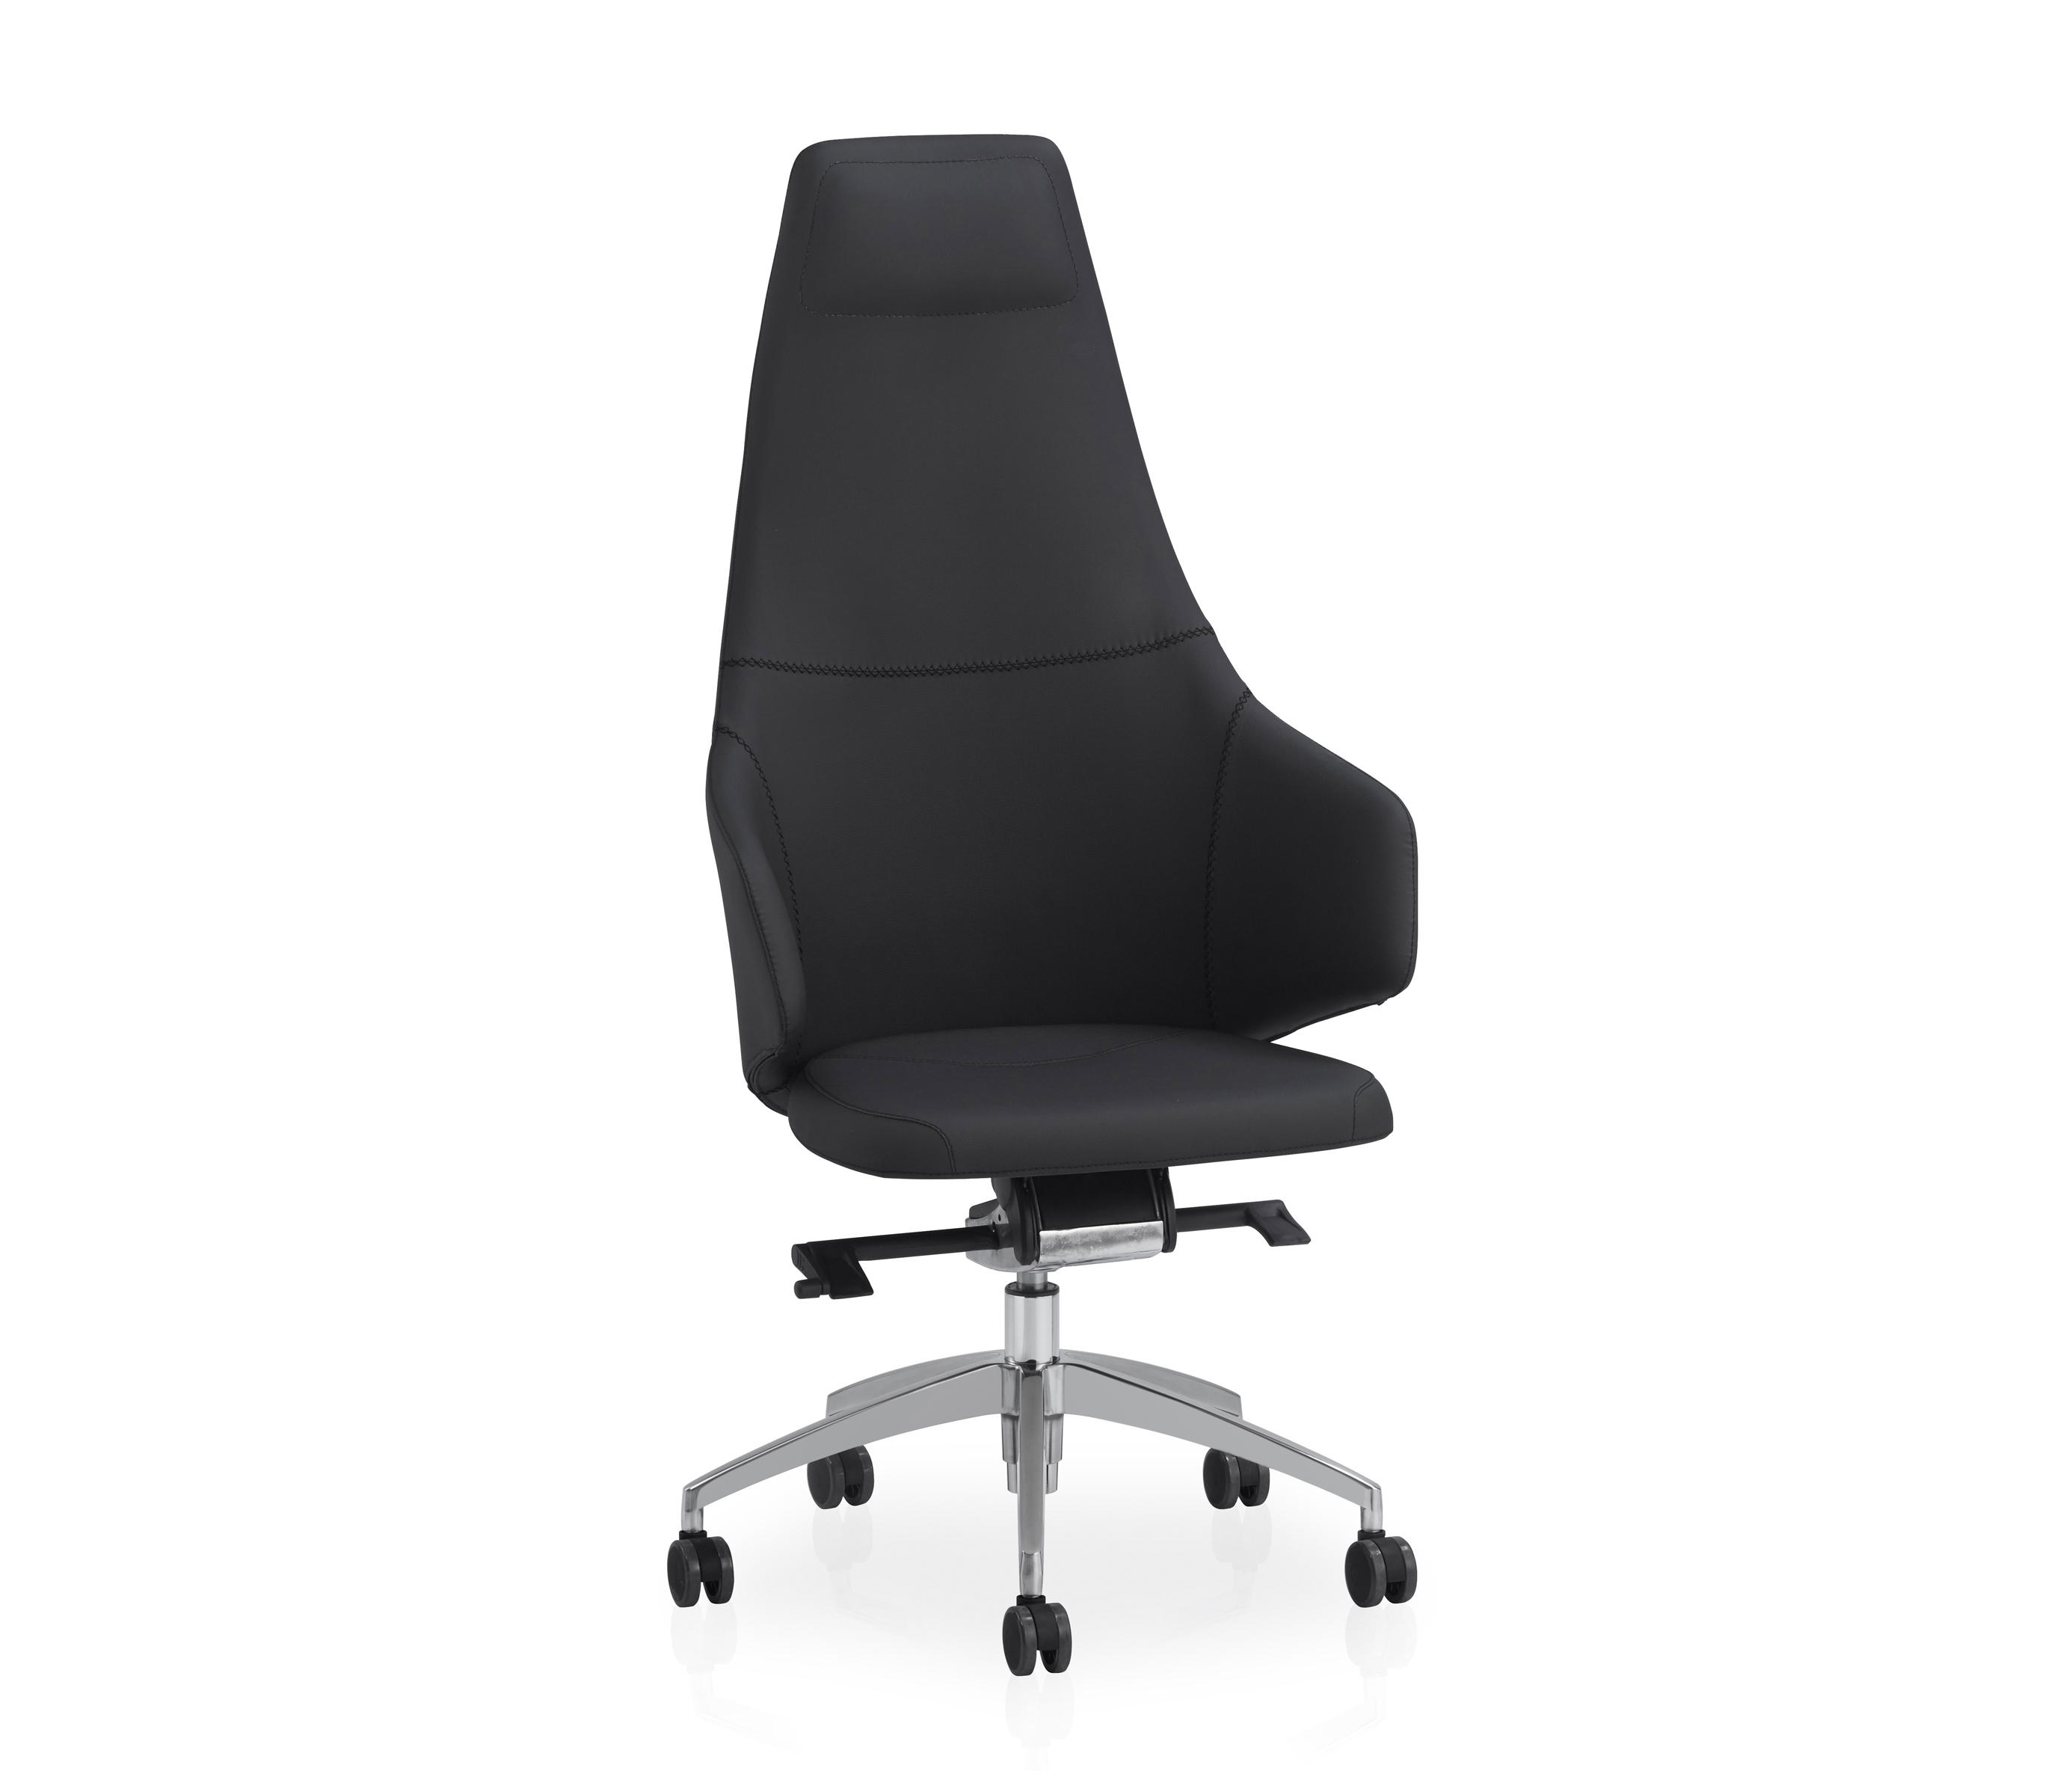 mentor office chairs from b t design architonic rh architonic com